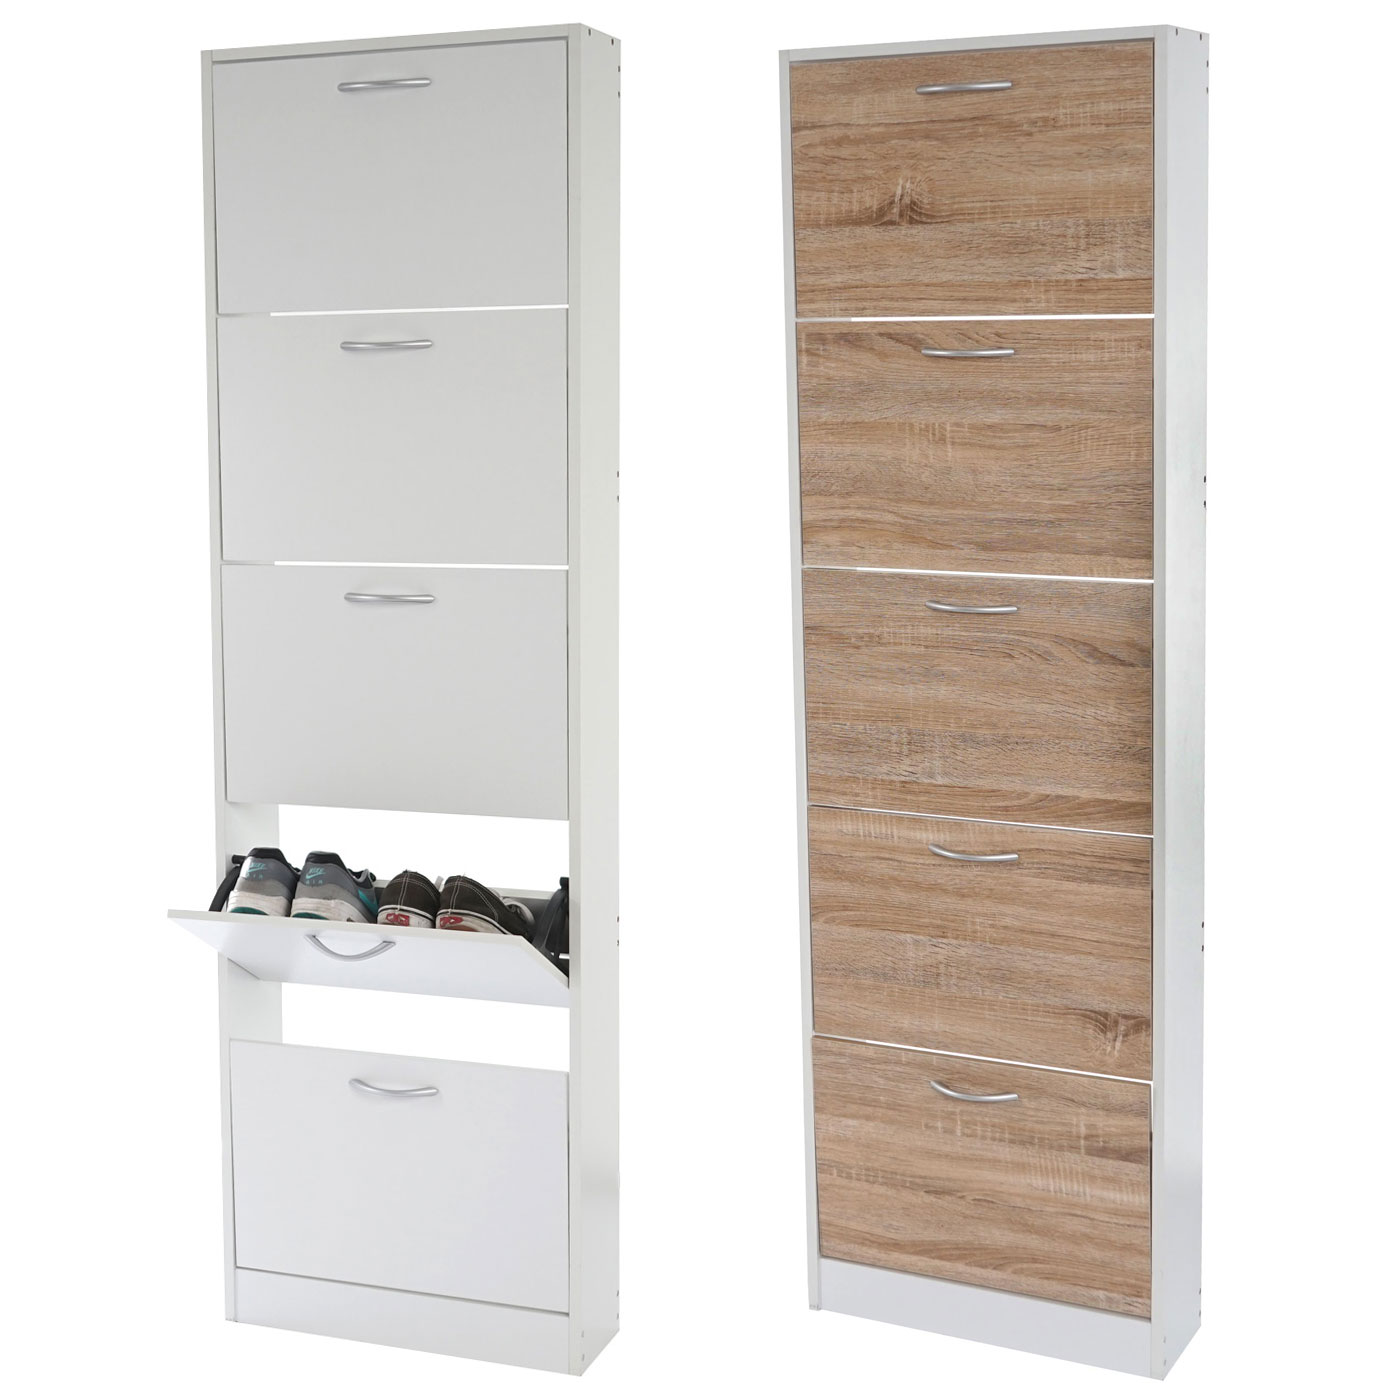 schuhschrank 15 cm tief astor massivholz schuhschrank 1. Black Bedroom Furniture Sets. Home Design Ideas